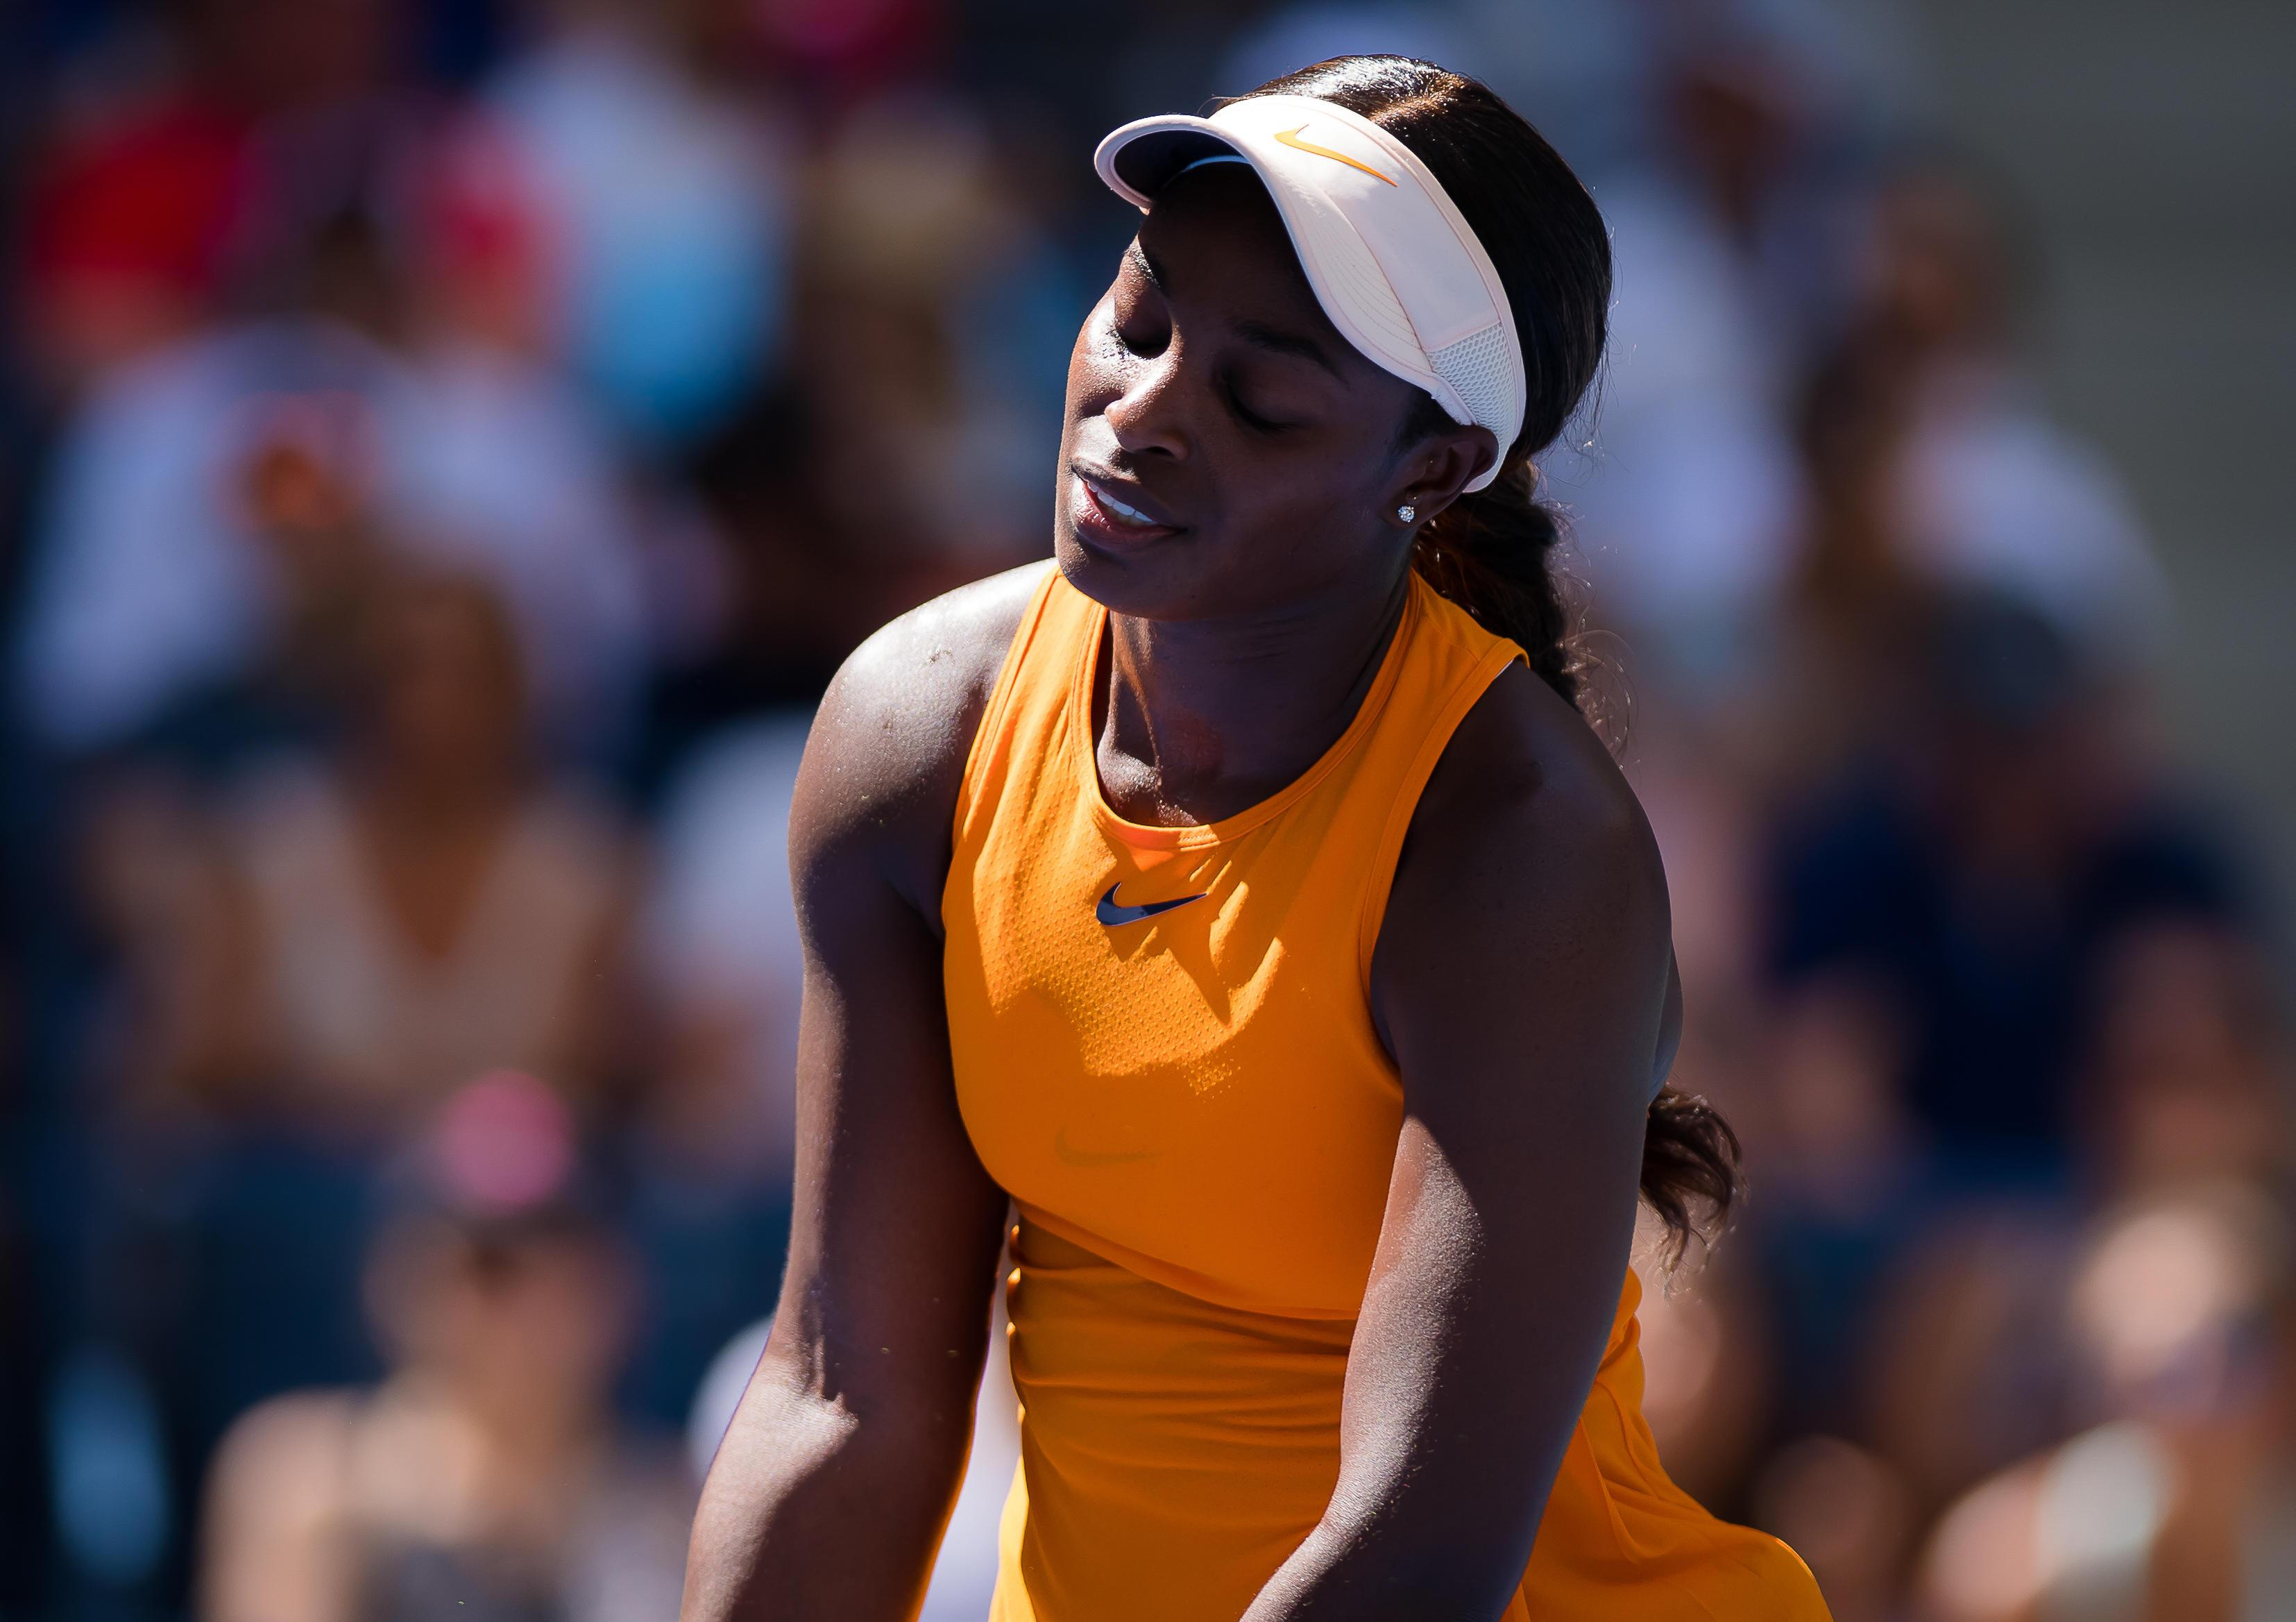 Sloane Stephens failed to cling on to her title after a disappointing defeat